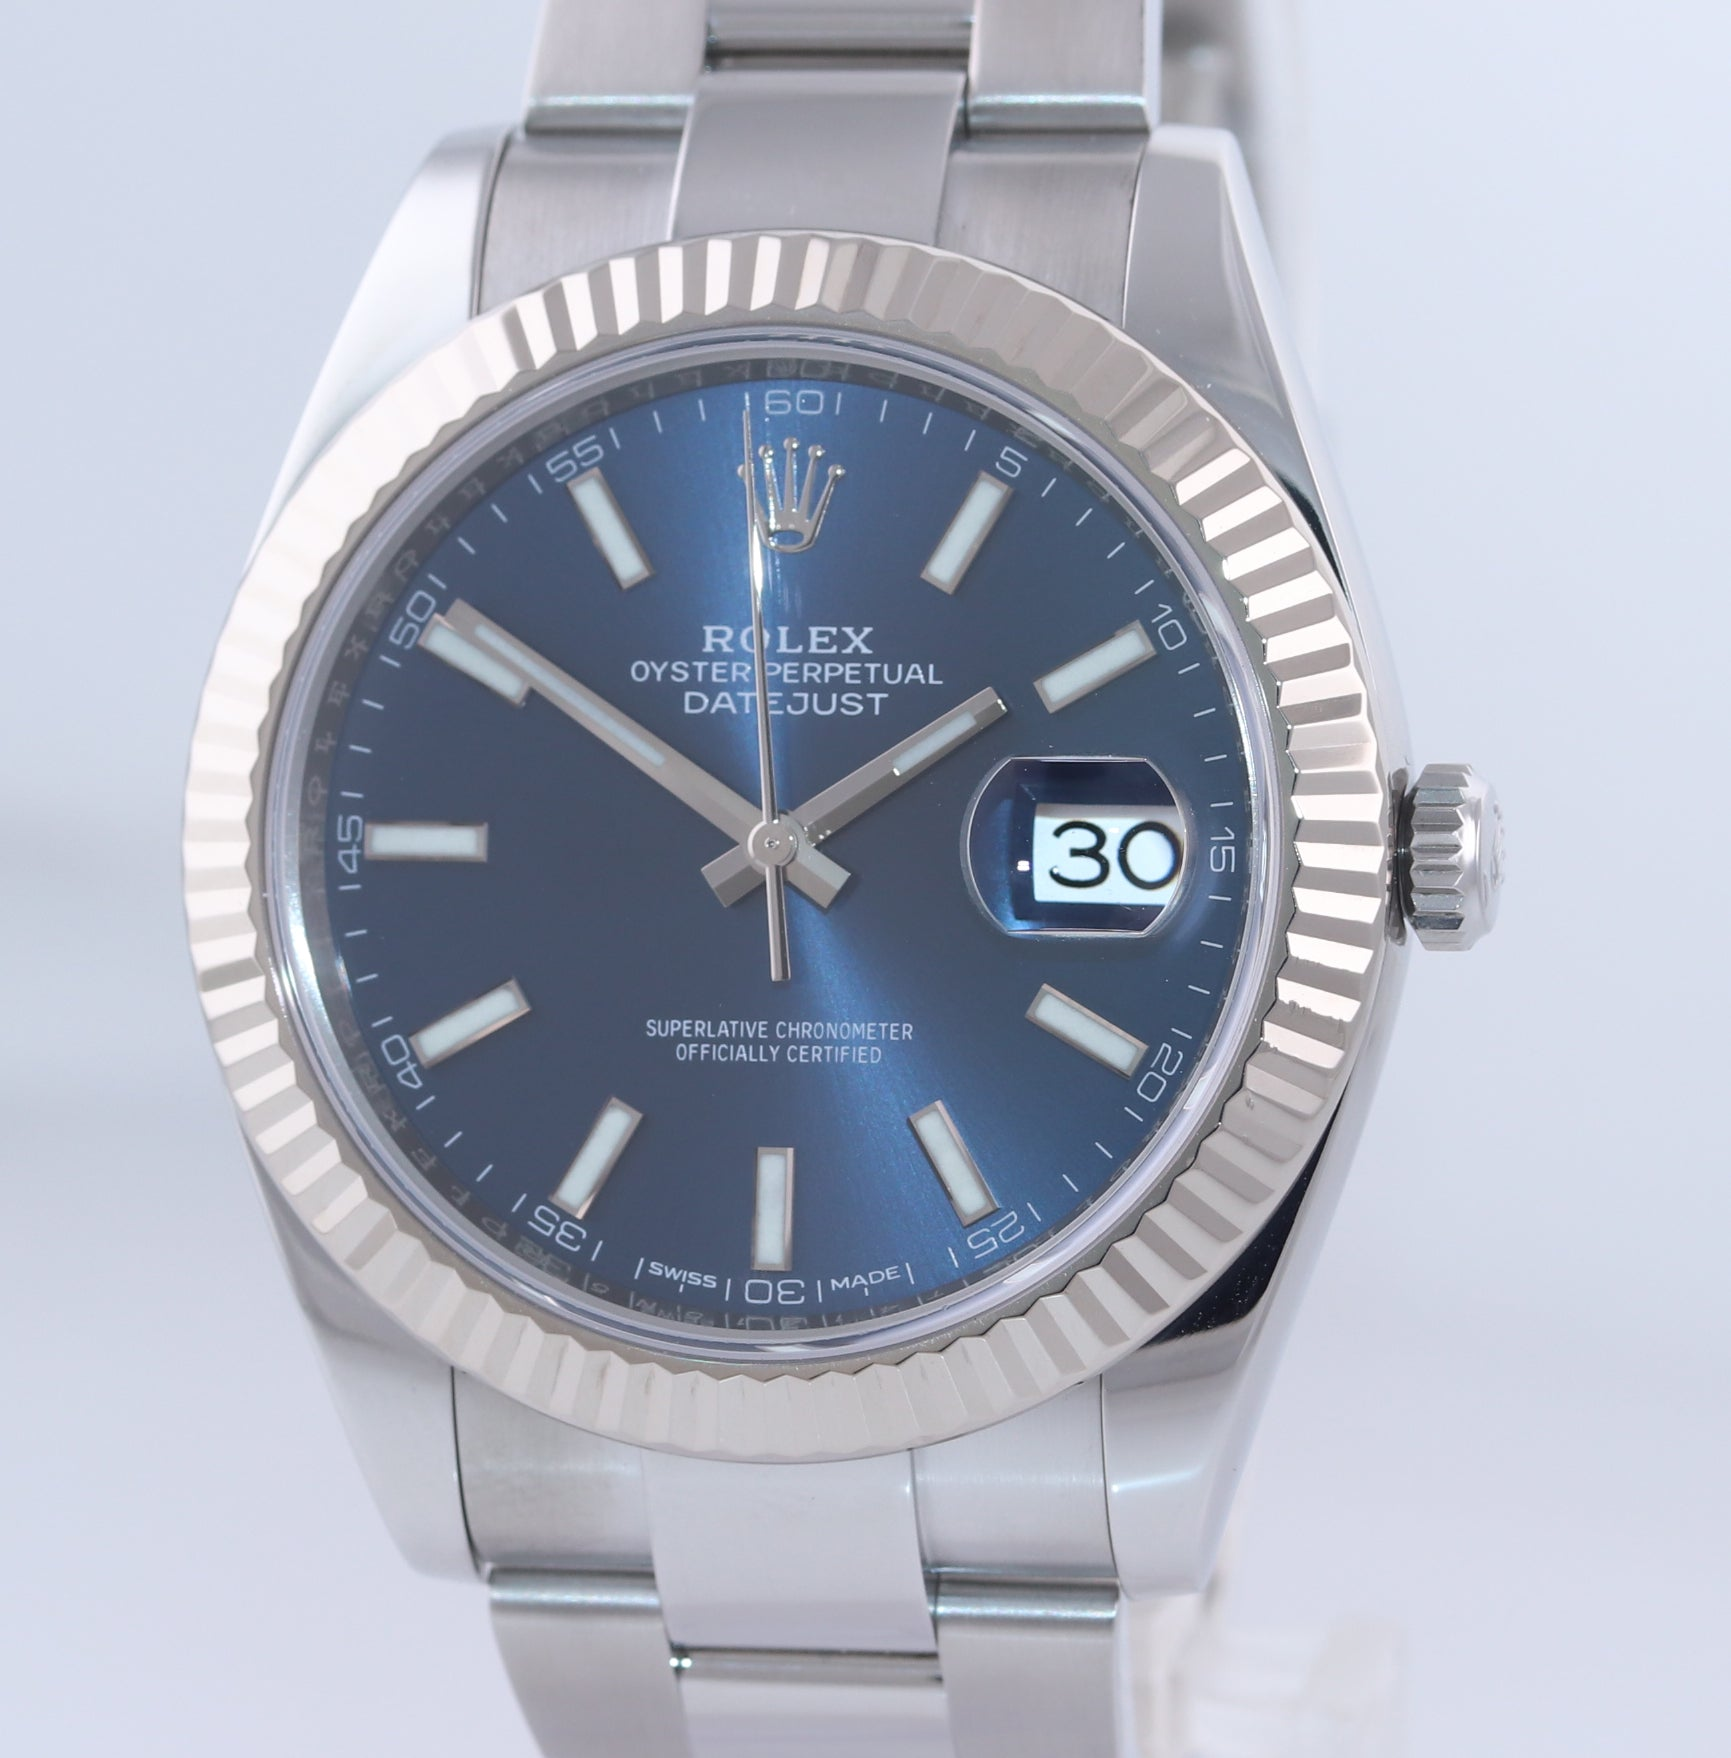 NEW 2020 Rolex DateJust 41 126334 Blue Stick Dial Steel Fluted  Oyster Watch Box